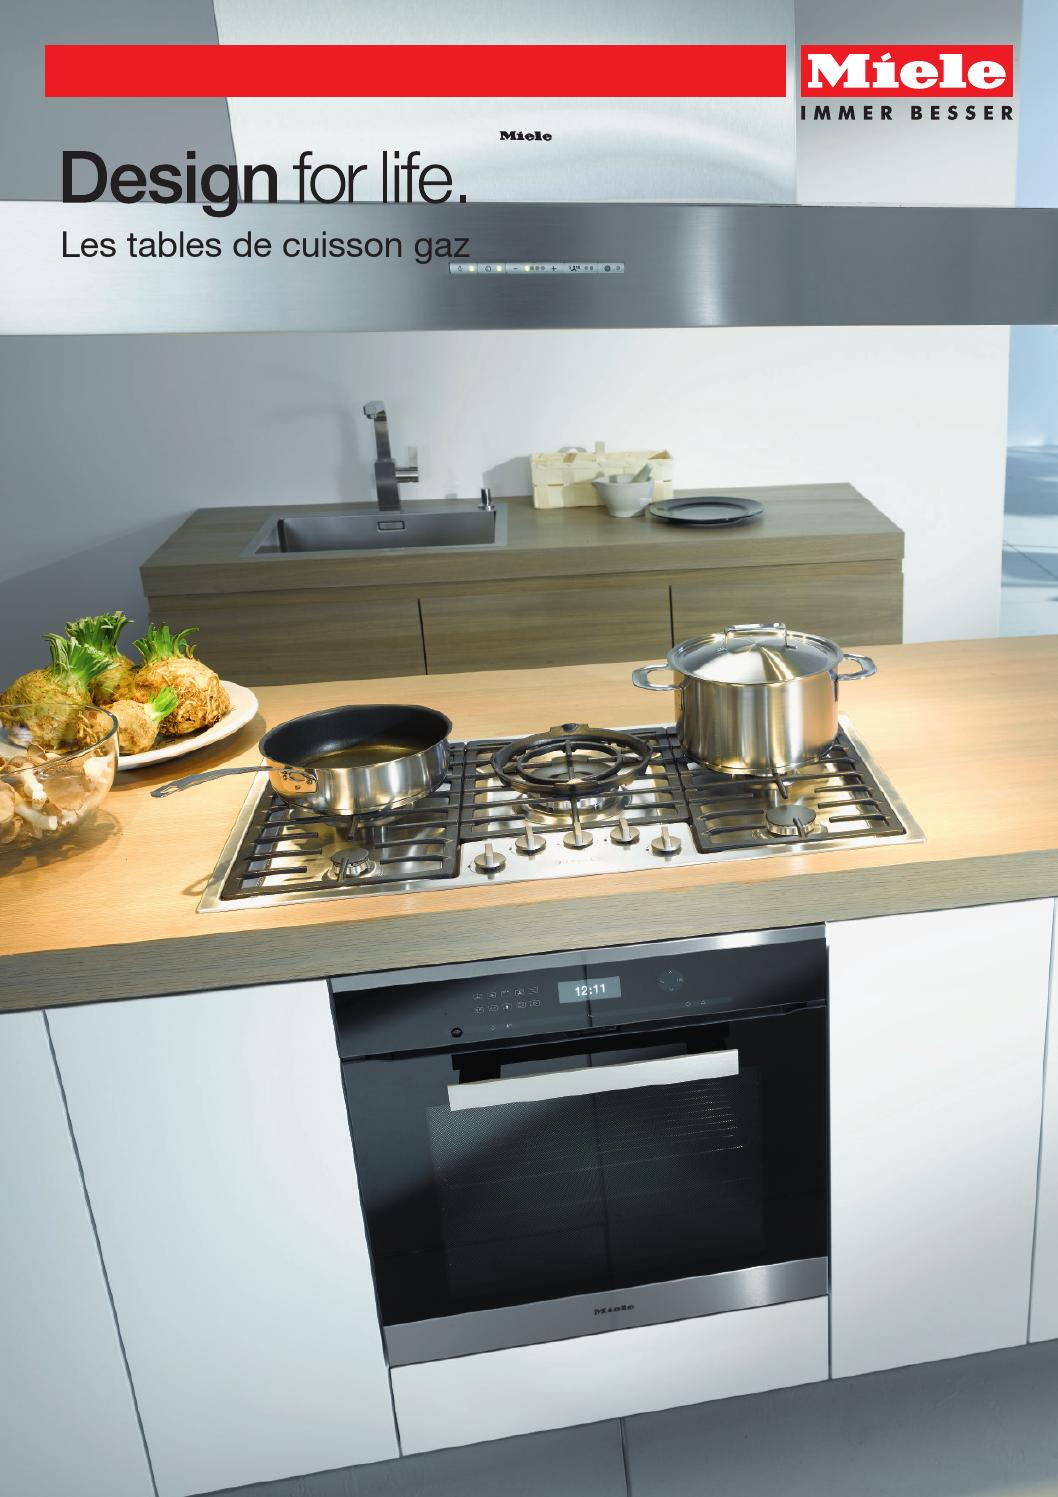 miele catalogue les tables de cuisson gaz fr by miele issuu. Black Bedroom Furniture Sets. Home Design Ideas